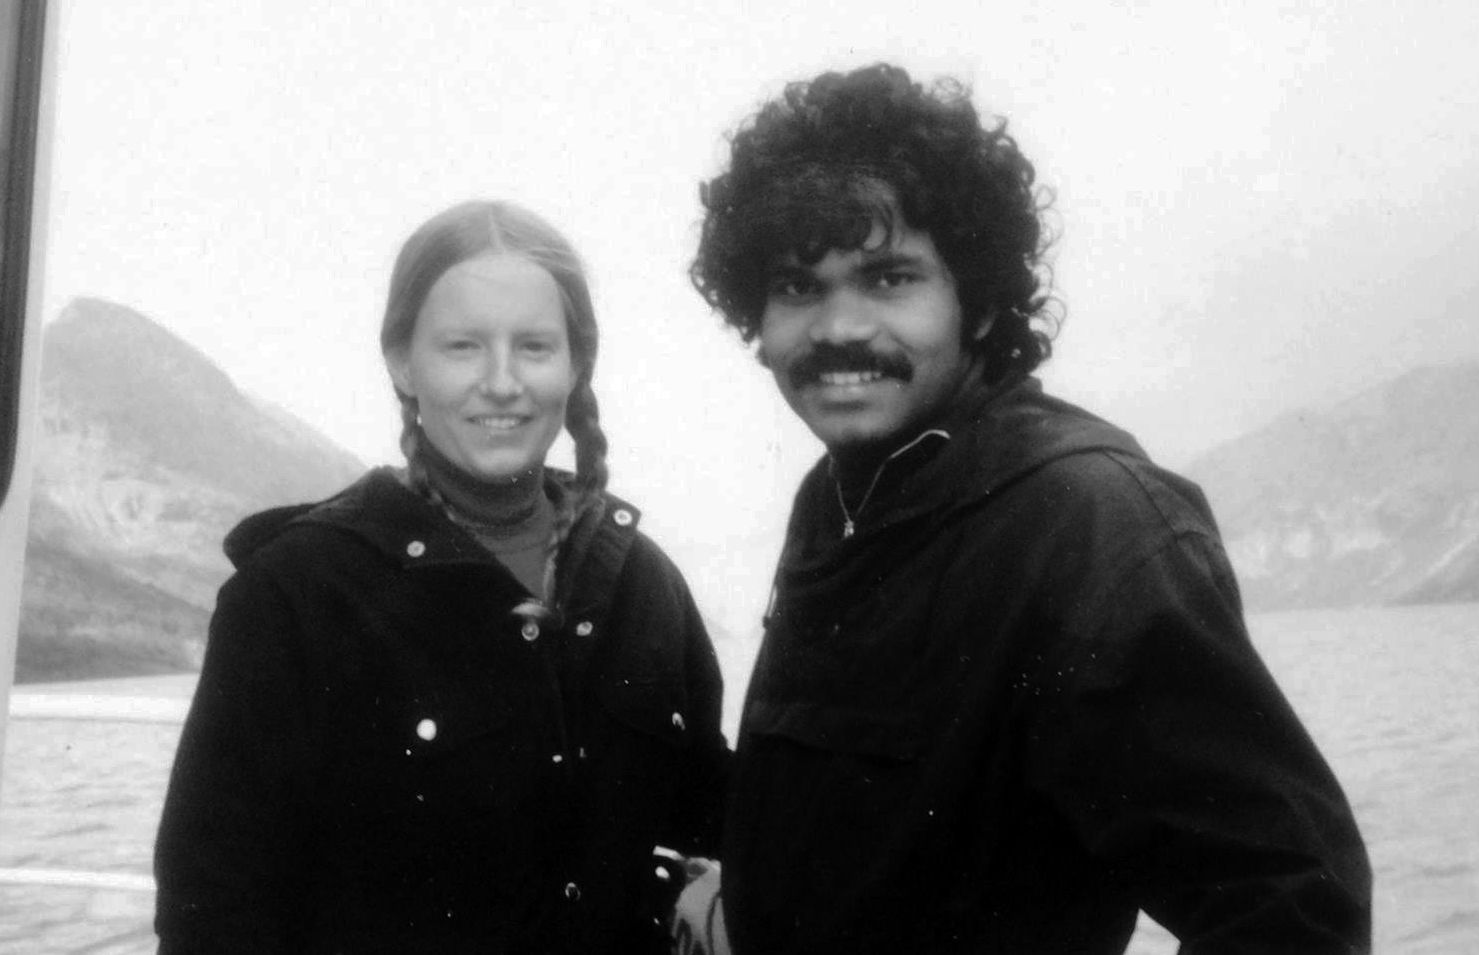 PK Mahanandia and Charlotte Von Schedvin early in their relationship. According to PK, the true meaning of humanity 'is love.'